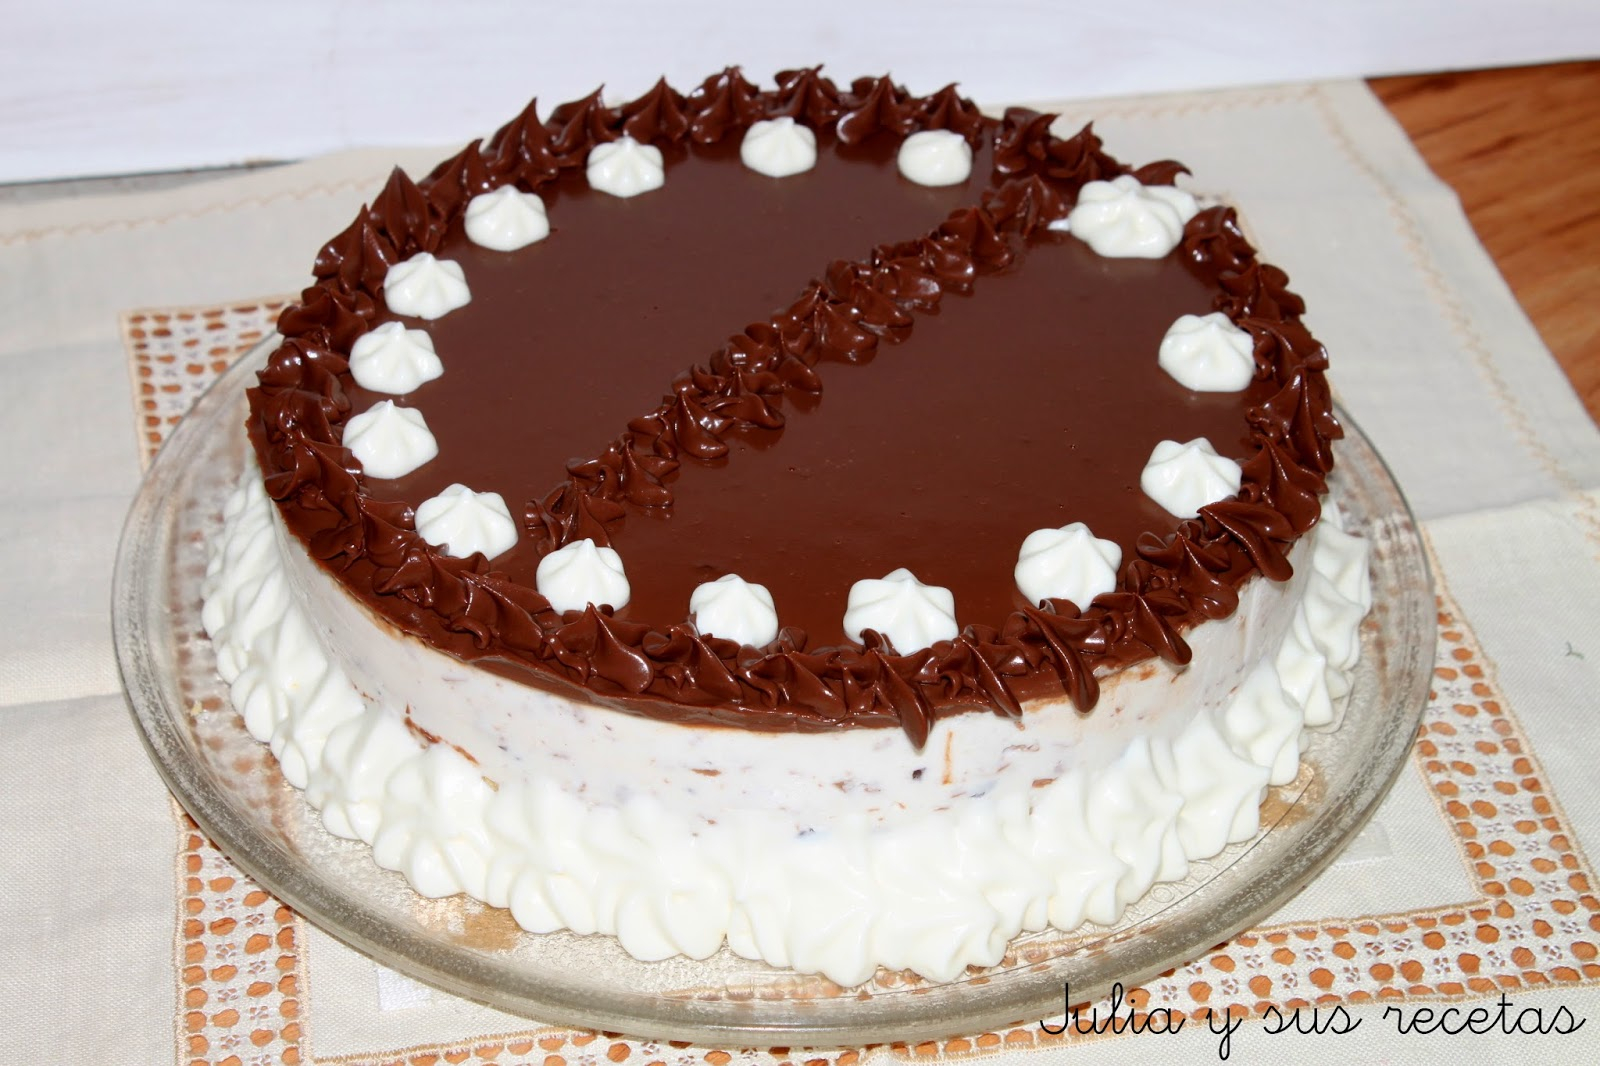 Decorar Tartas Con Chocolate Y Frutas